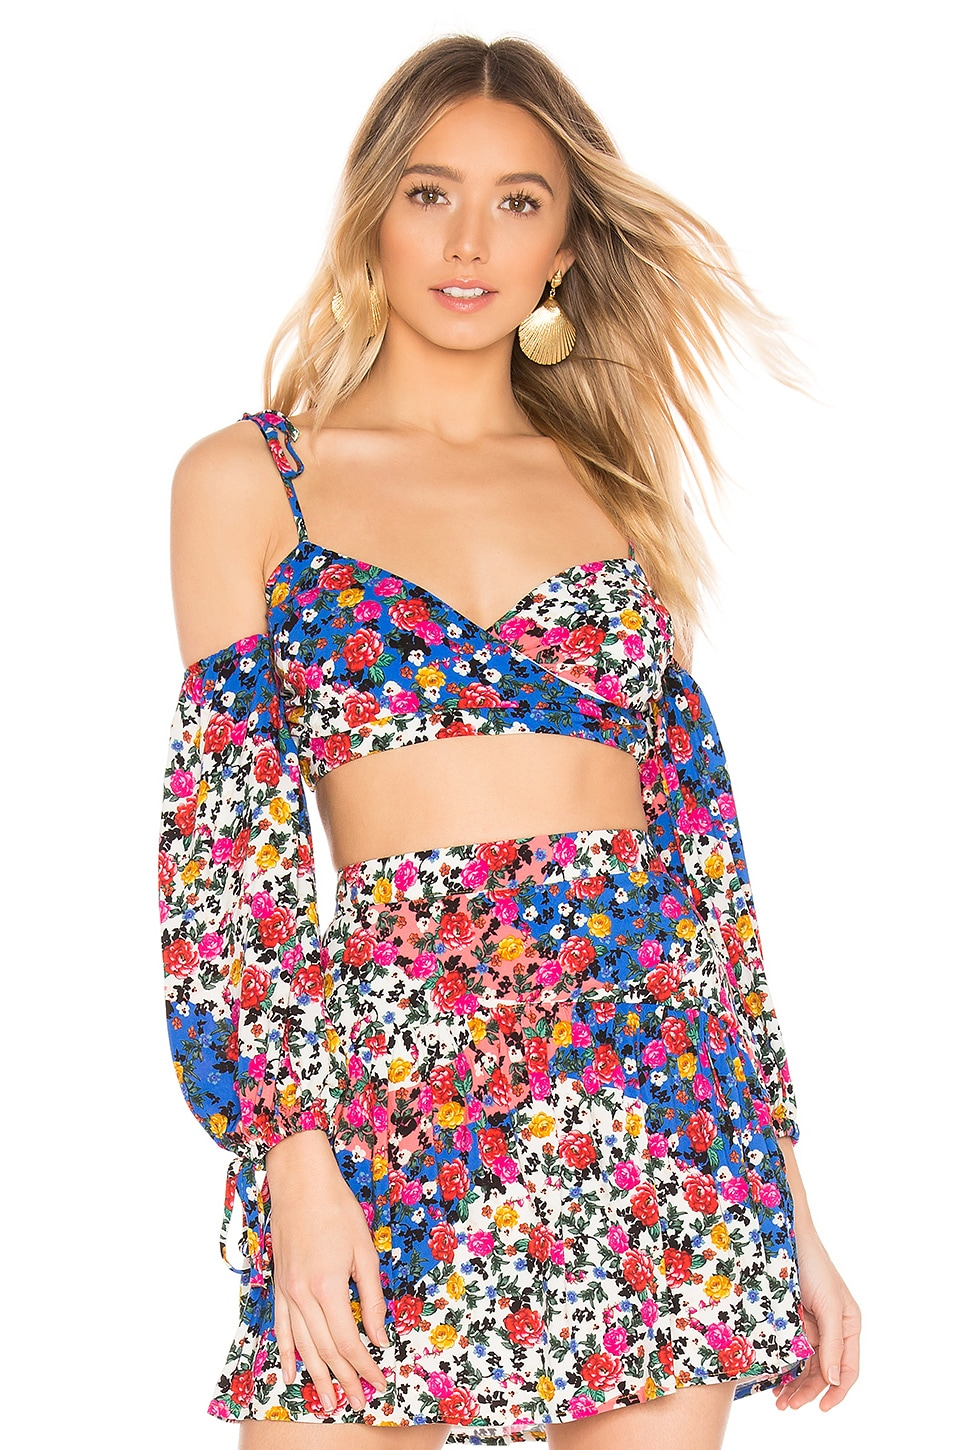 MAJORELLE Shannon Top in Patchwork Multi